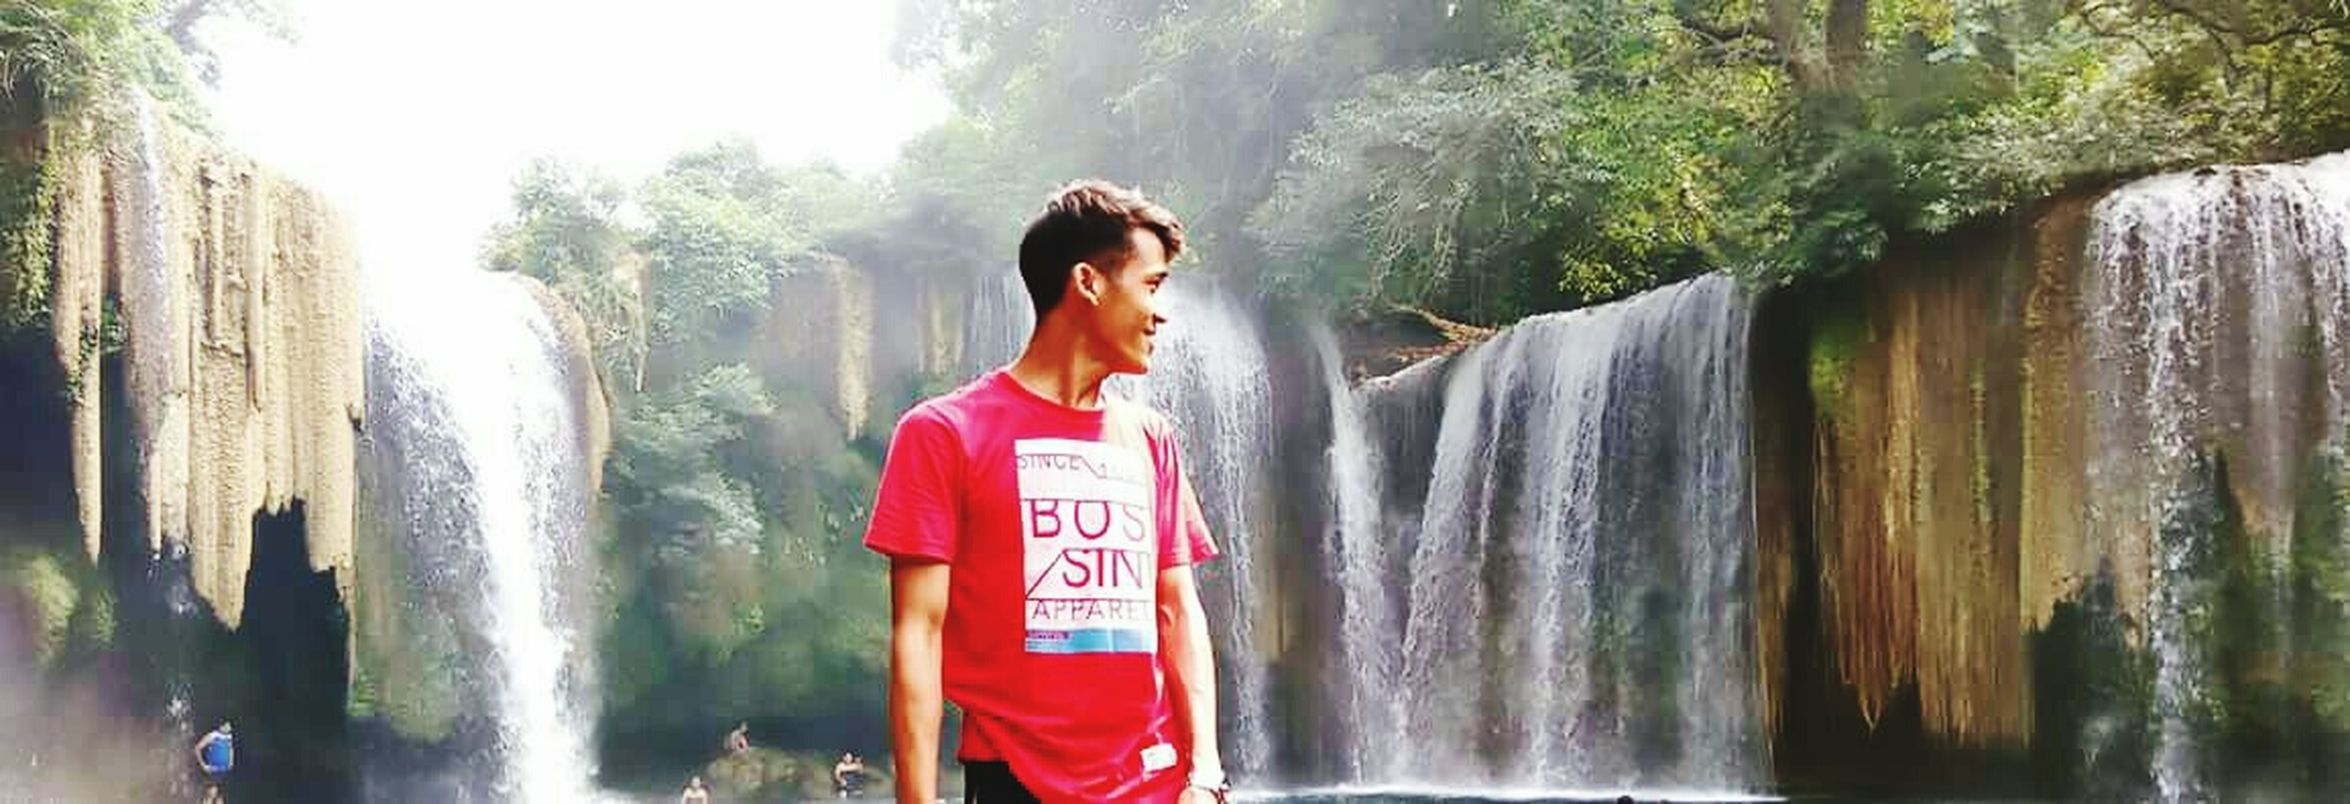 Hopefully waterfall moment .sorry for resolution photo size bcoz ph camera MP is too weak Hello World Great View Point Of View Solo Traveler! EyeEm Best Shots EyeEm Gallery Beauty In Ordinary Things EyeEmBestPics Light And Shadow Enjoying Life The Great Outdoors With Adobe Our Best Pics Relaxing Holiday Taking Photos Xiaomiphotography My Heart And Soul Written On The Wall Hi! Myself Portrait The Best Pic Break Time The Best Moments EyeEm Nature Lover Show Your Light